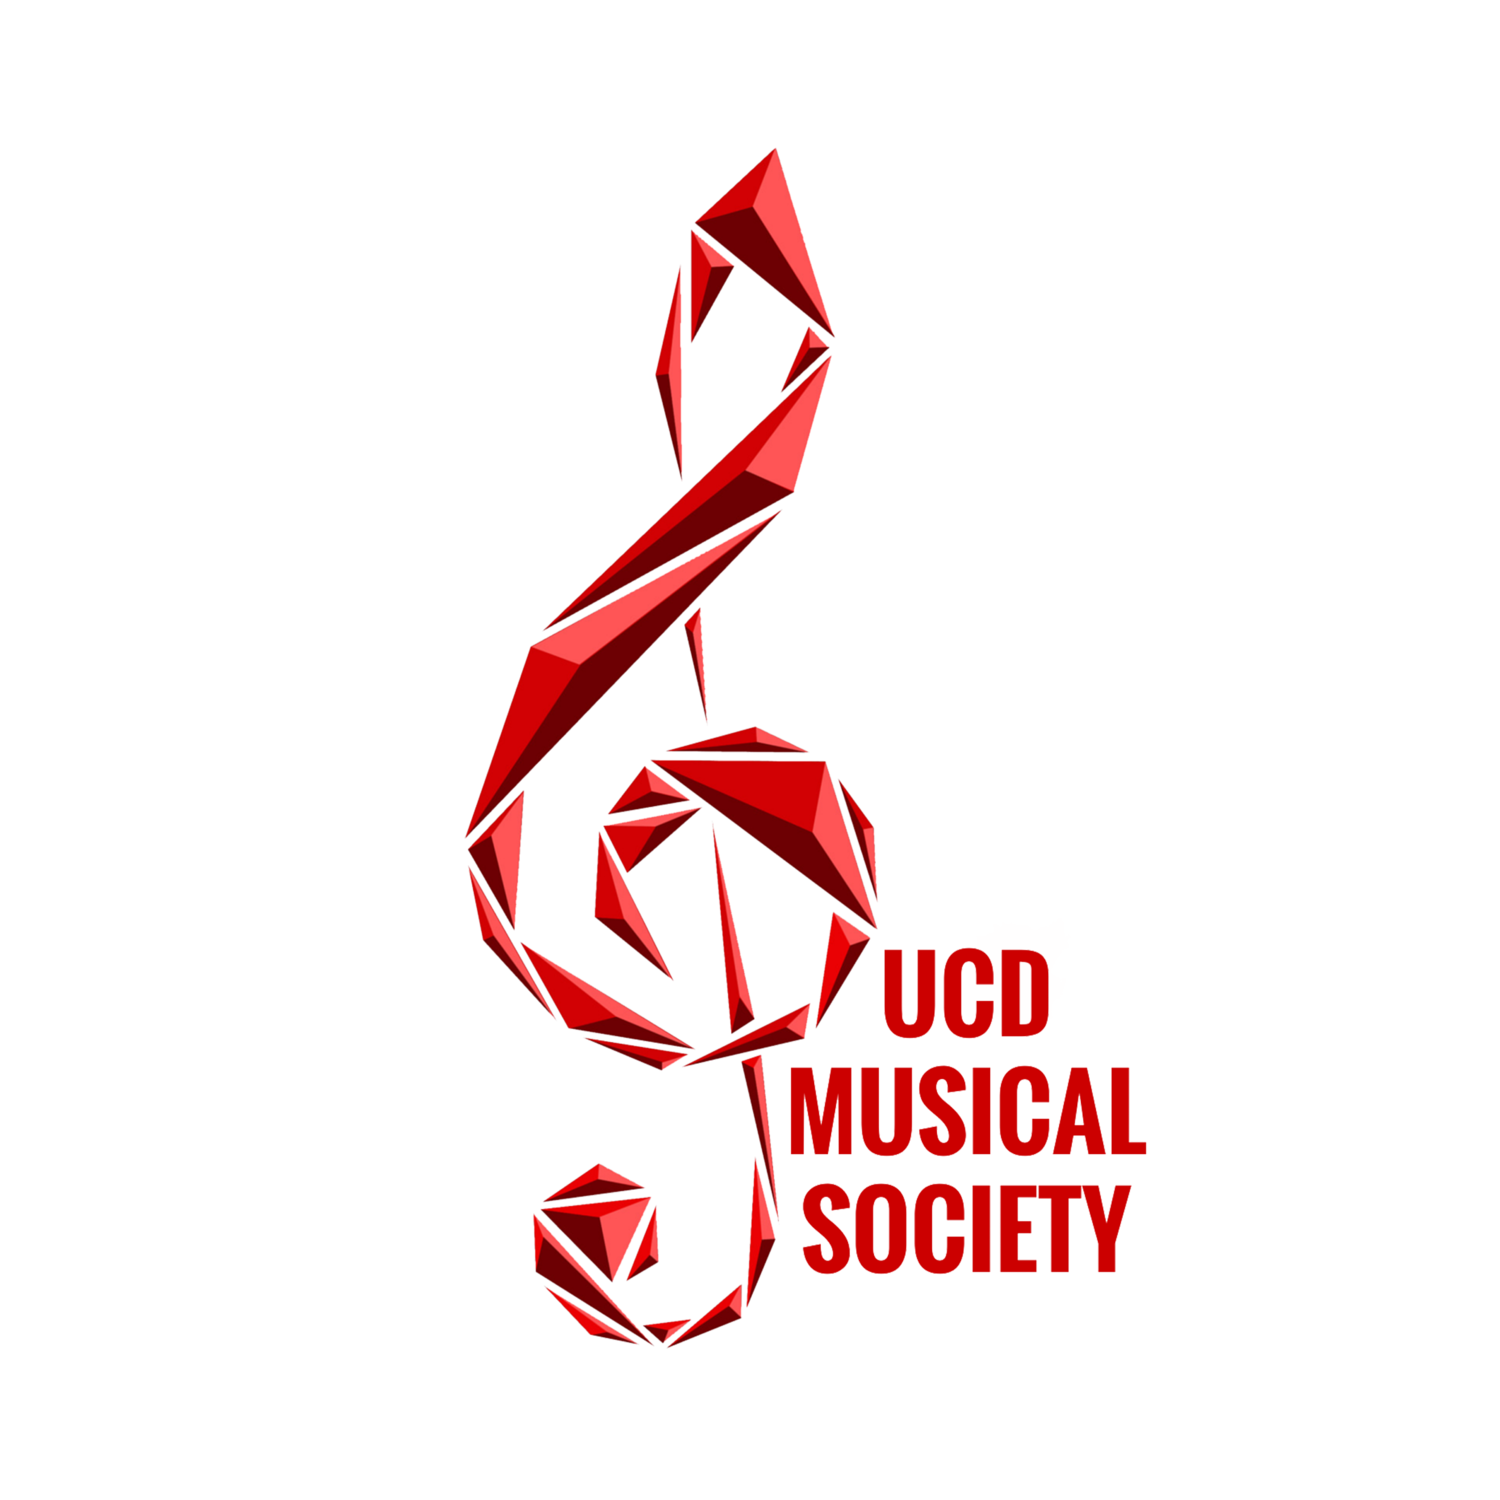 UCD Musical Society